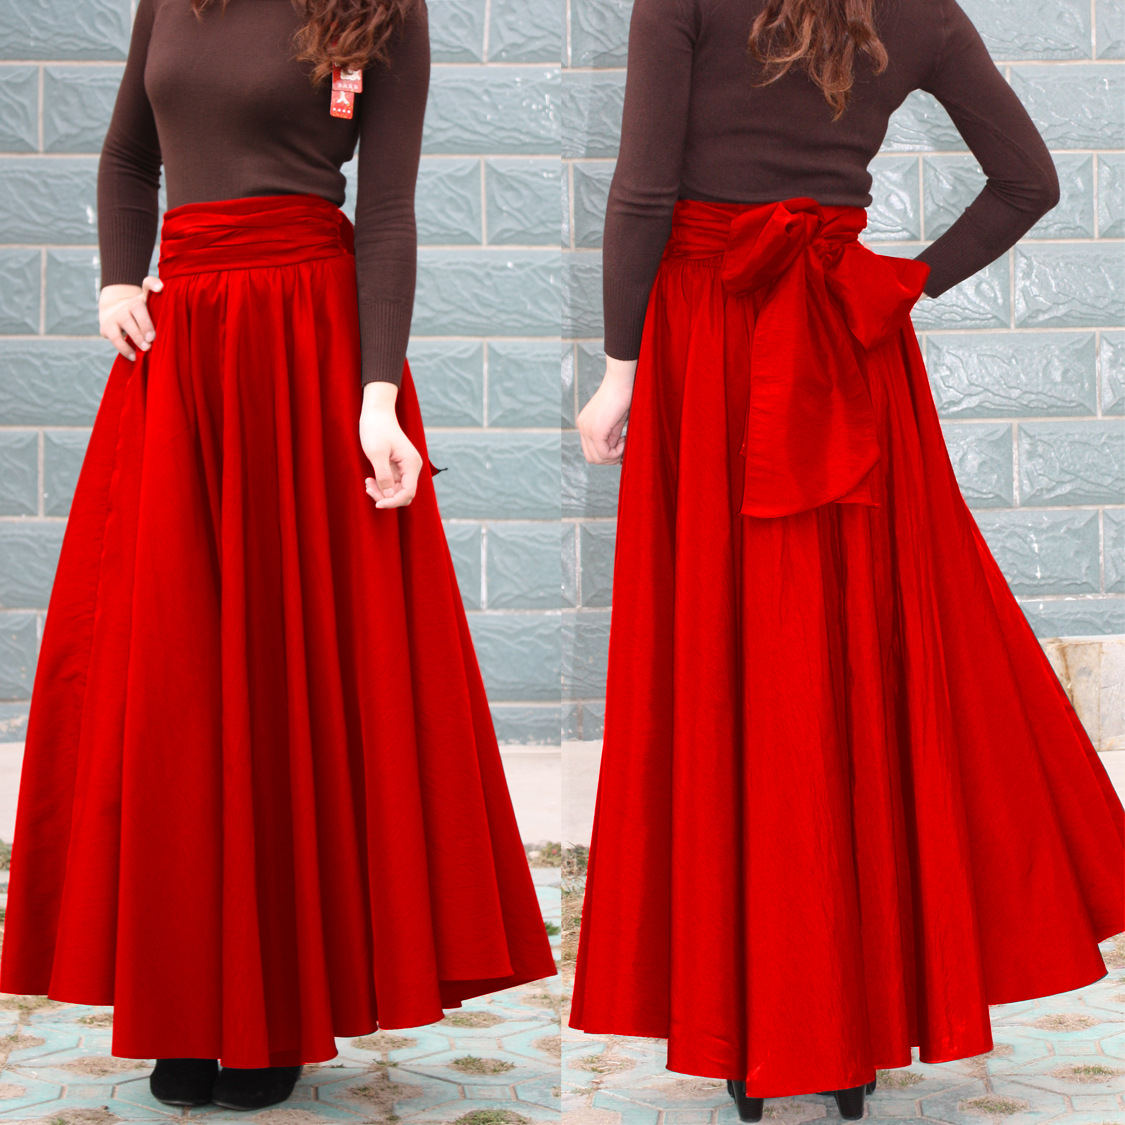 Dk124 Europe And America Street Snap Celebrity Style Bow Big Hemline High-waisted Slimming-Style Long Skirts Skirt Pleated Skirt